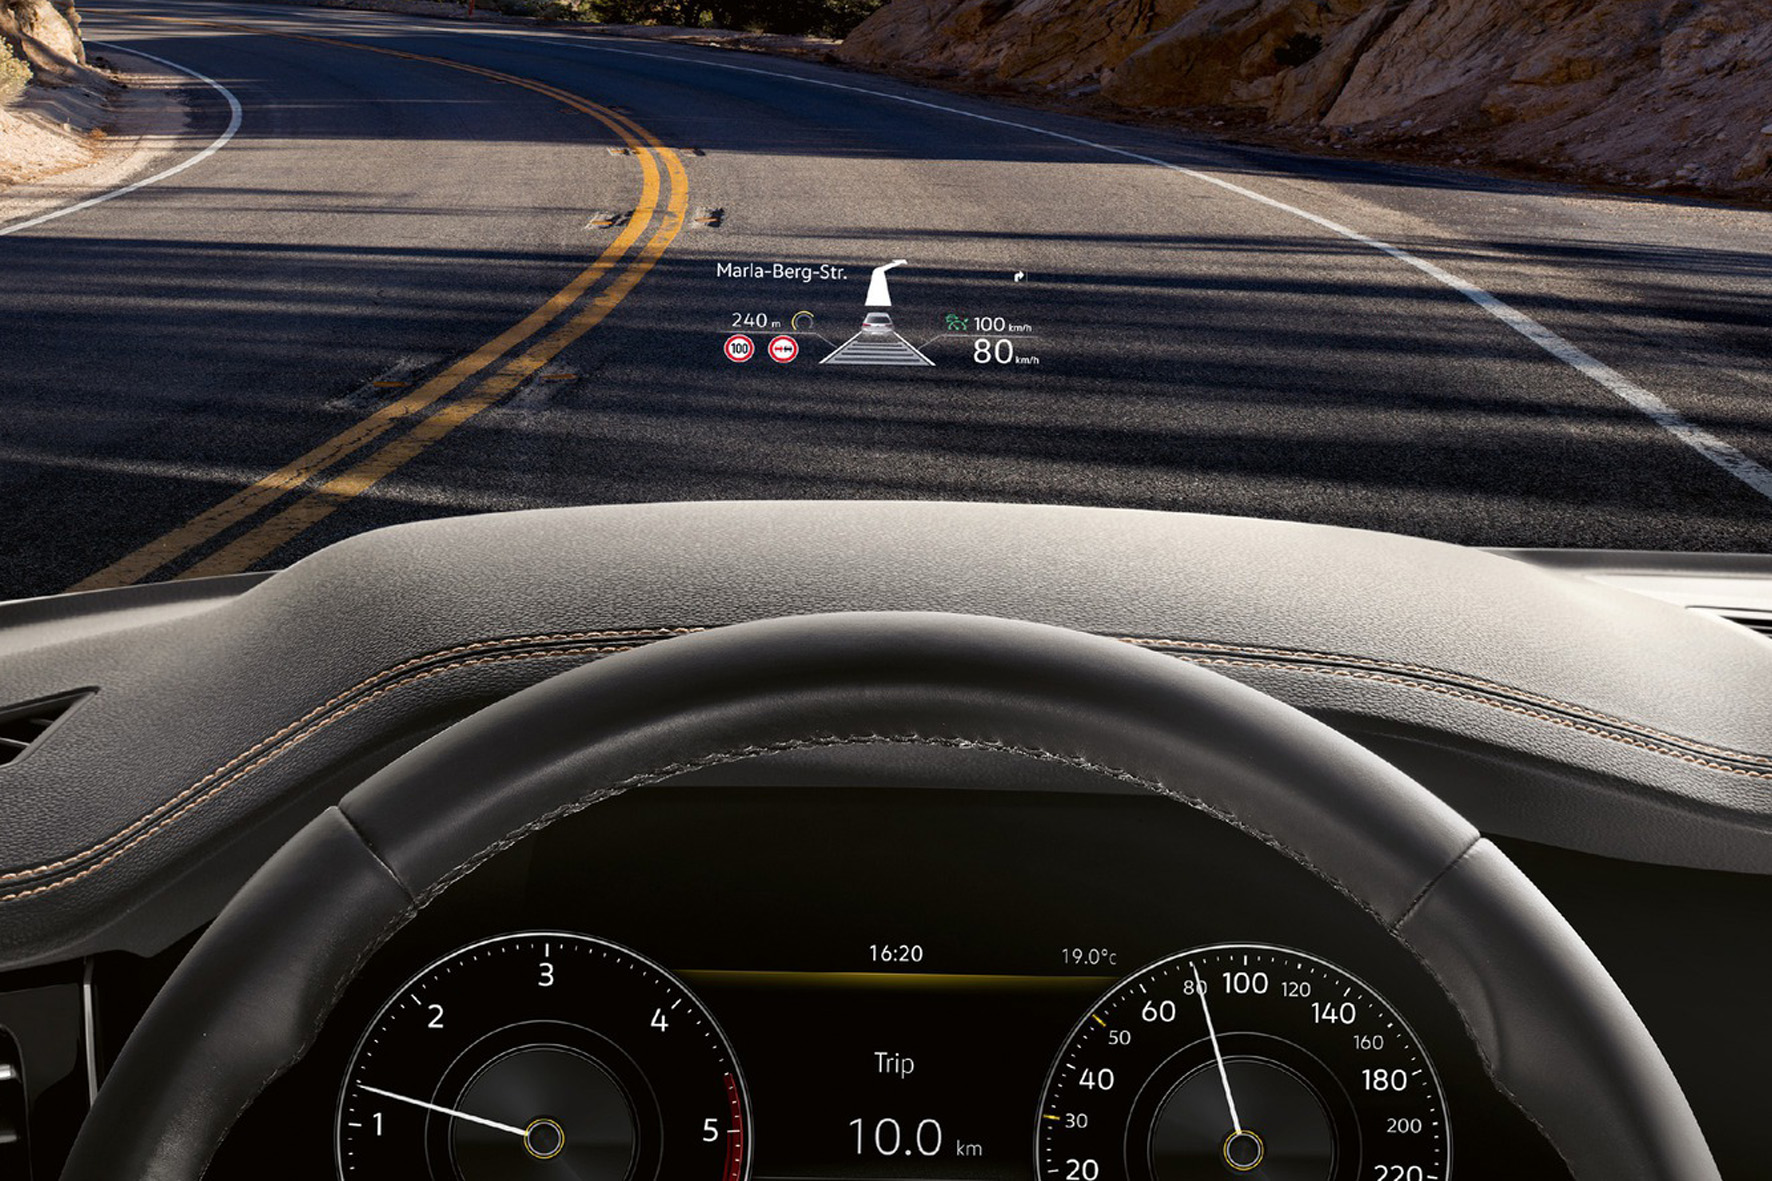 VW Touareg Head-up Display